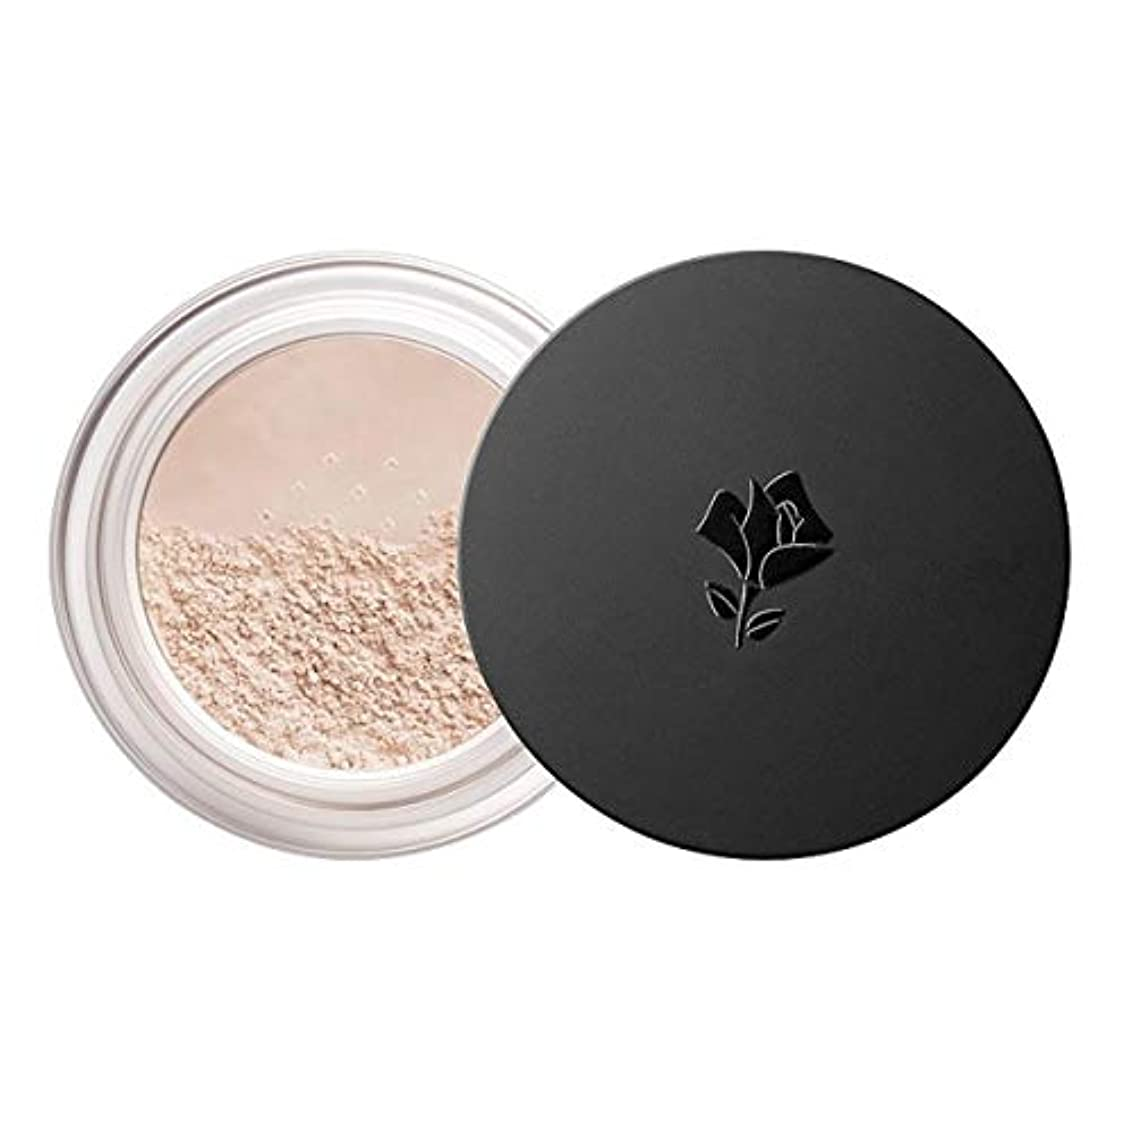 湿度想定する句読点ランコム Long Time No Shine Loose Setting & Mattifying Powder - # Translucent 15g/0.52oz並行輸入品